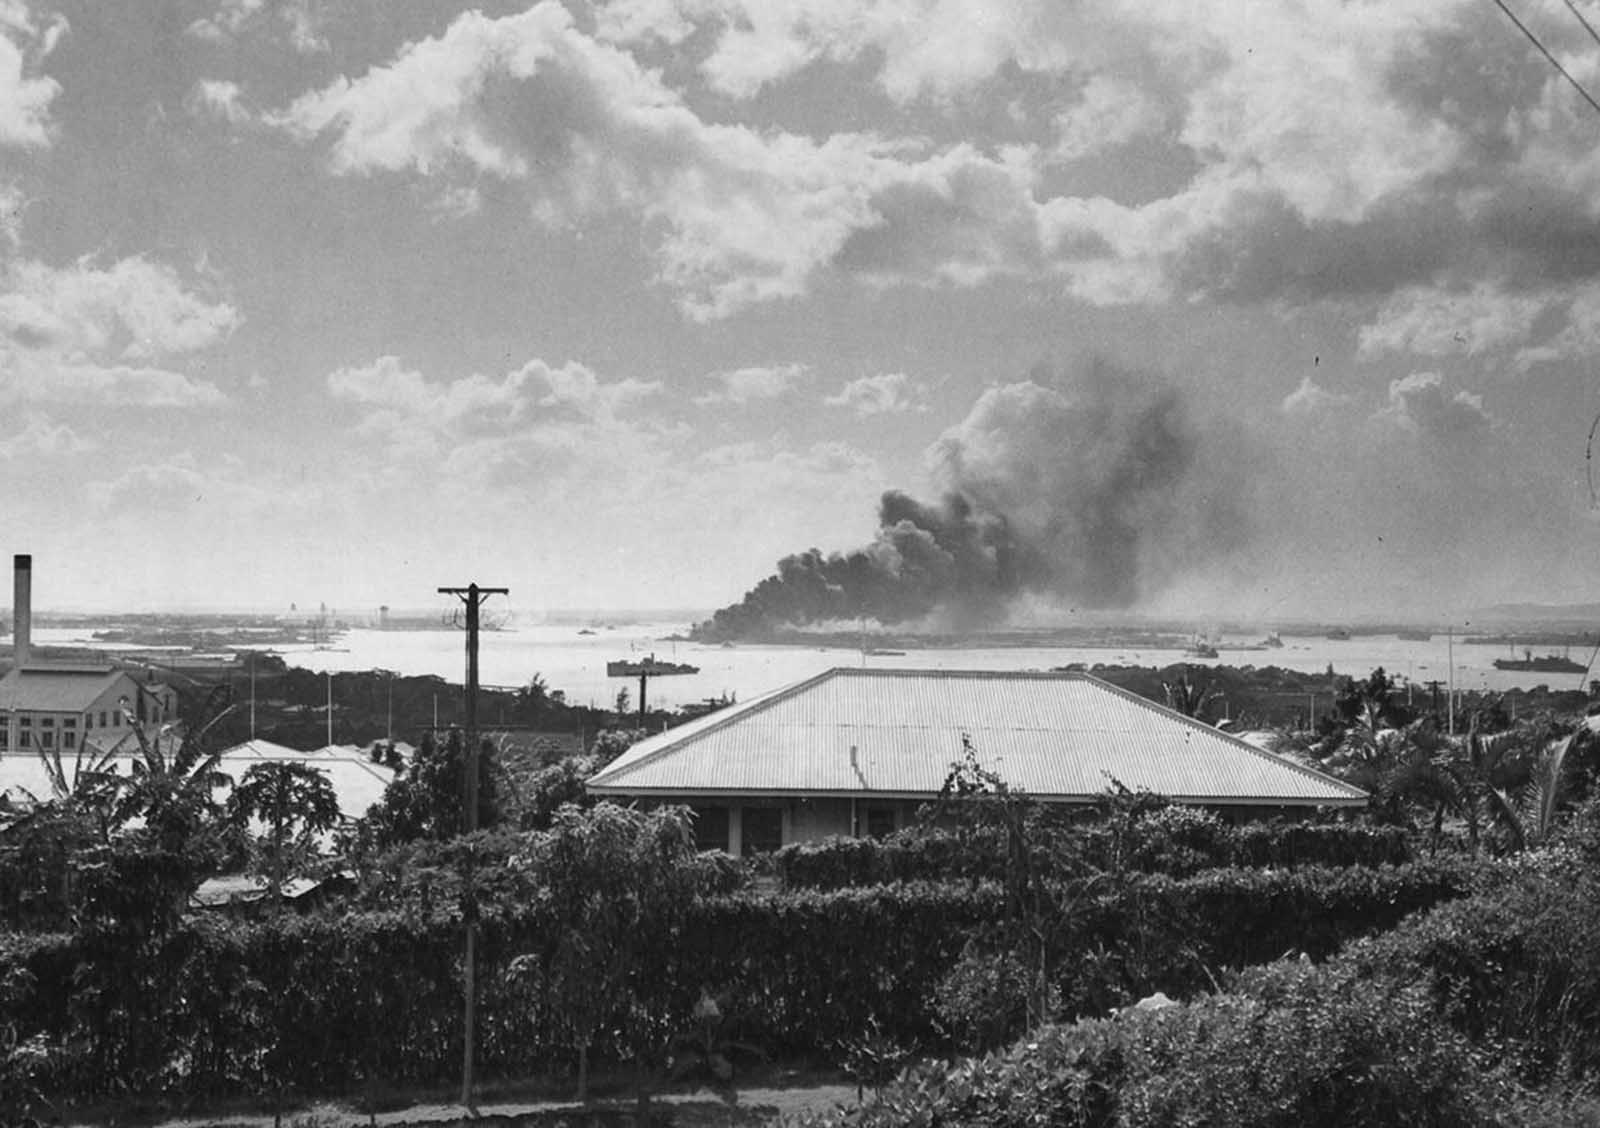 Seen from a distance, the Battleship Arizona burns as it sinks in Pearl Harbor after the December 7, 1941 raid by Japanese bombers.